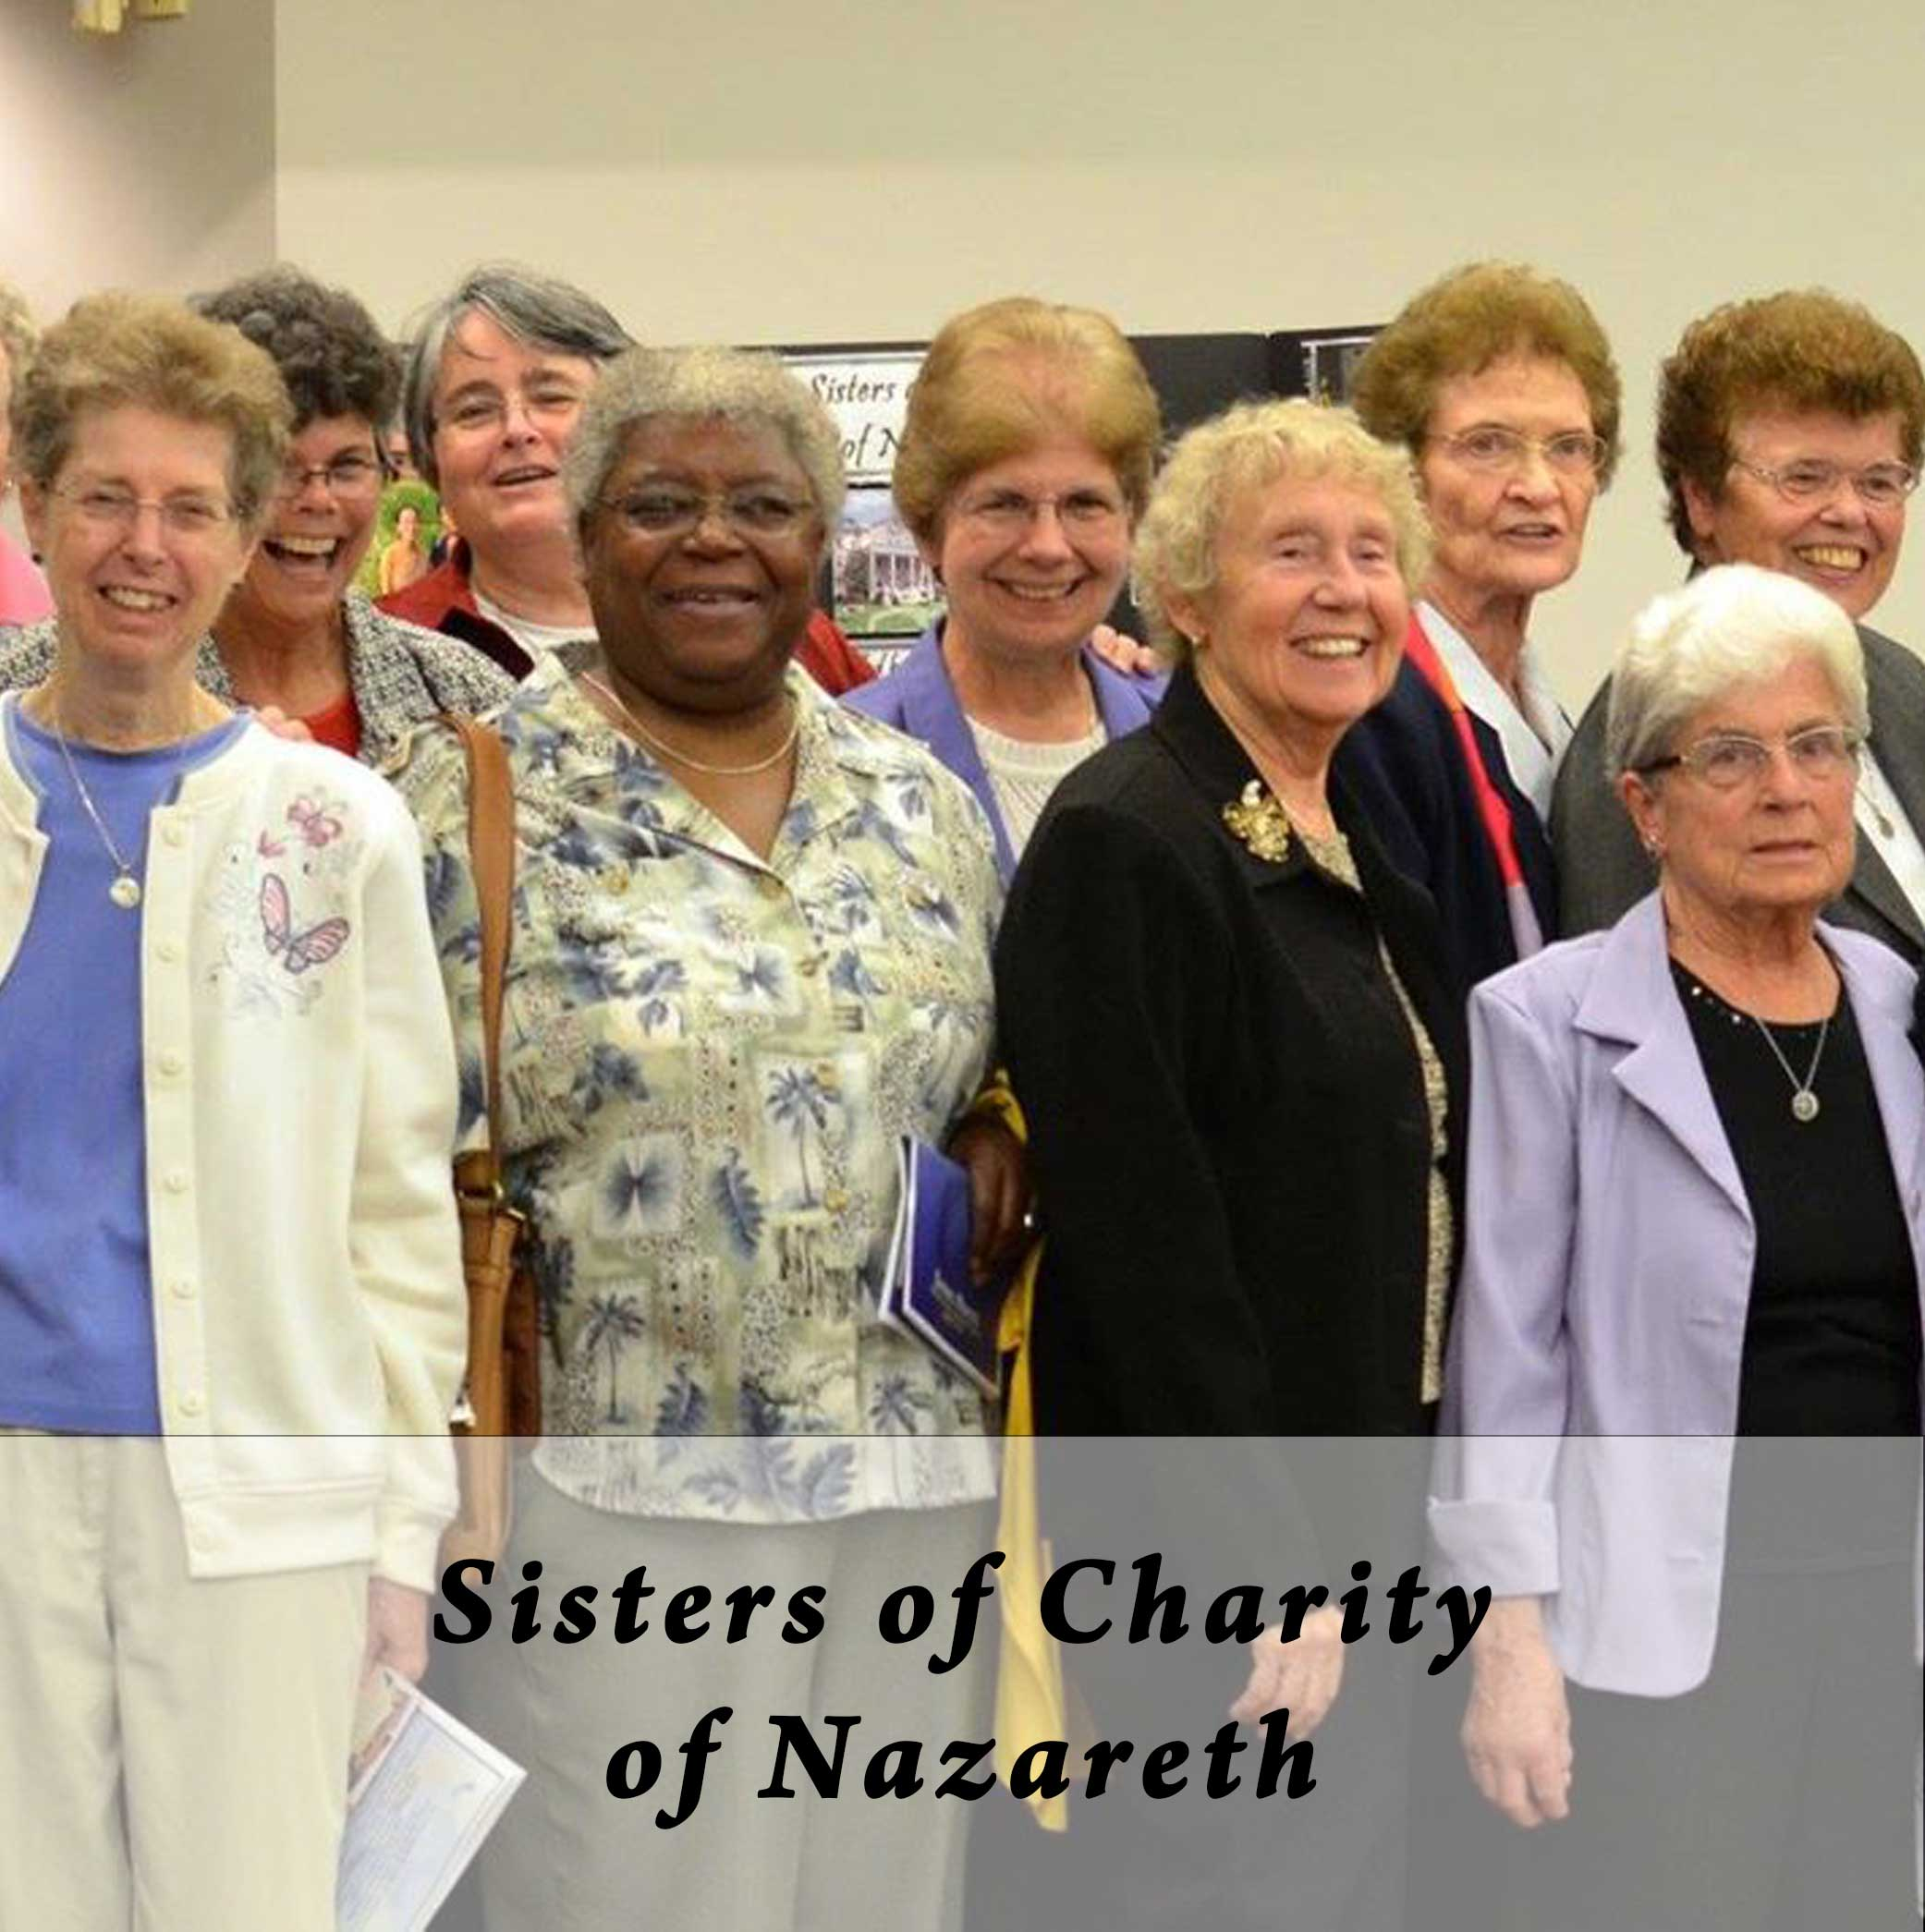 Sisters-of-Charity-of-Nazareth.jpg